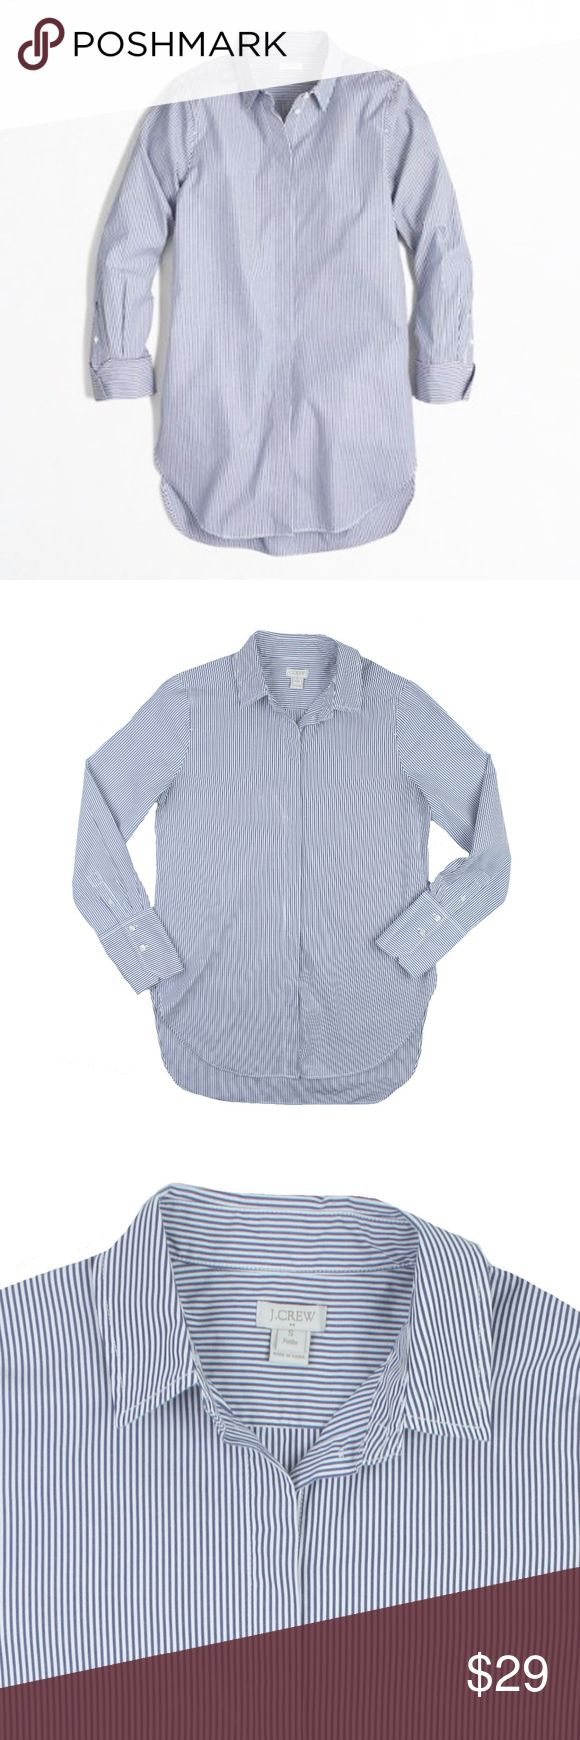 """JCREW Blue Stripe Infinity Shirt Button Down Size - Petite S  This blue and white stripe infinity button down shirt from JCREW  is in excellent condition. It features a longer length, hi-low hemline and button closures. 100% Cotton.  Measures: Bust: 36"""" Total Length: 27"""" in front, 30"""" in back Sleeves: 23"""" J. Crew Tops Button Down Shirts"""